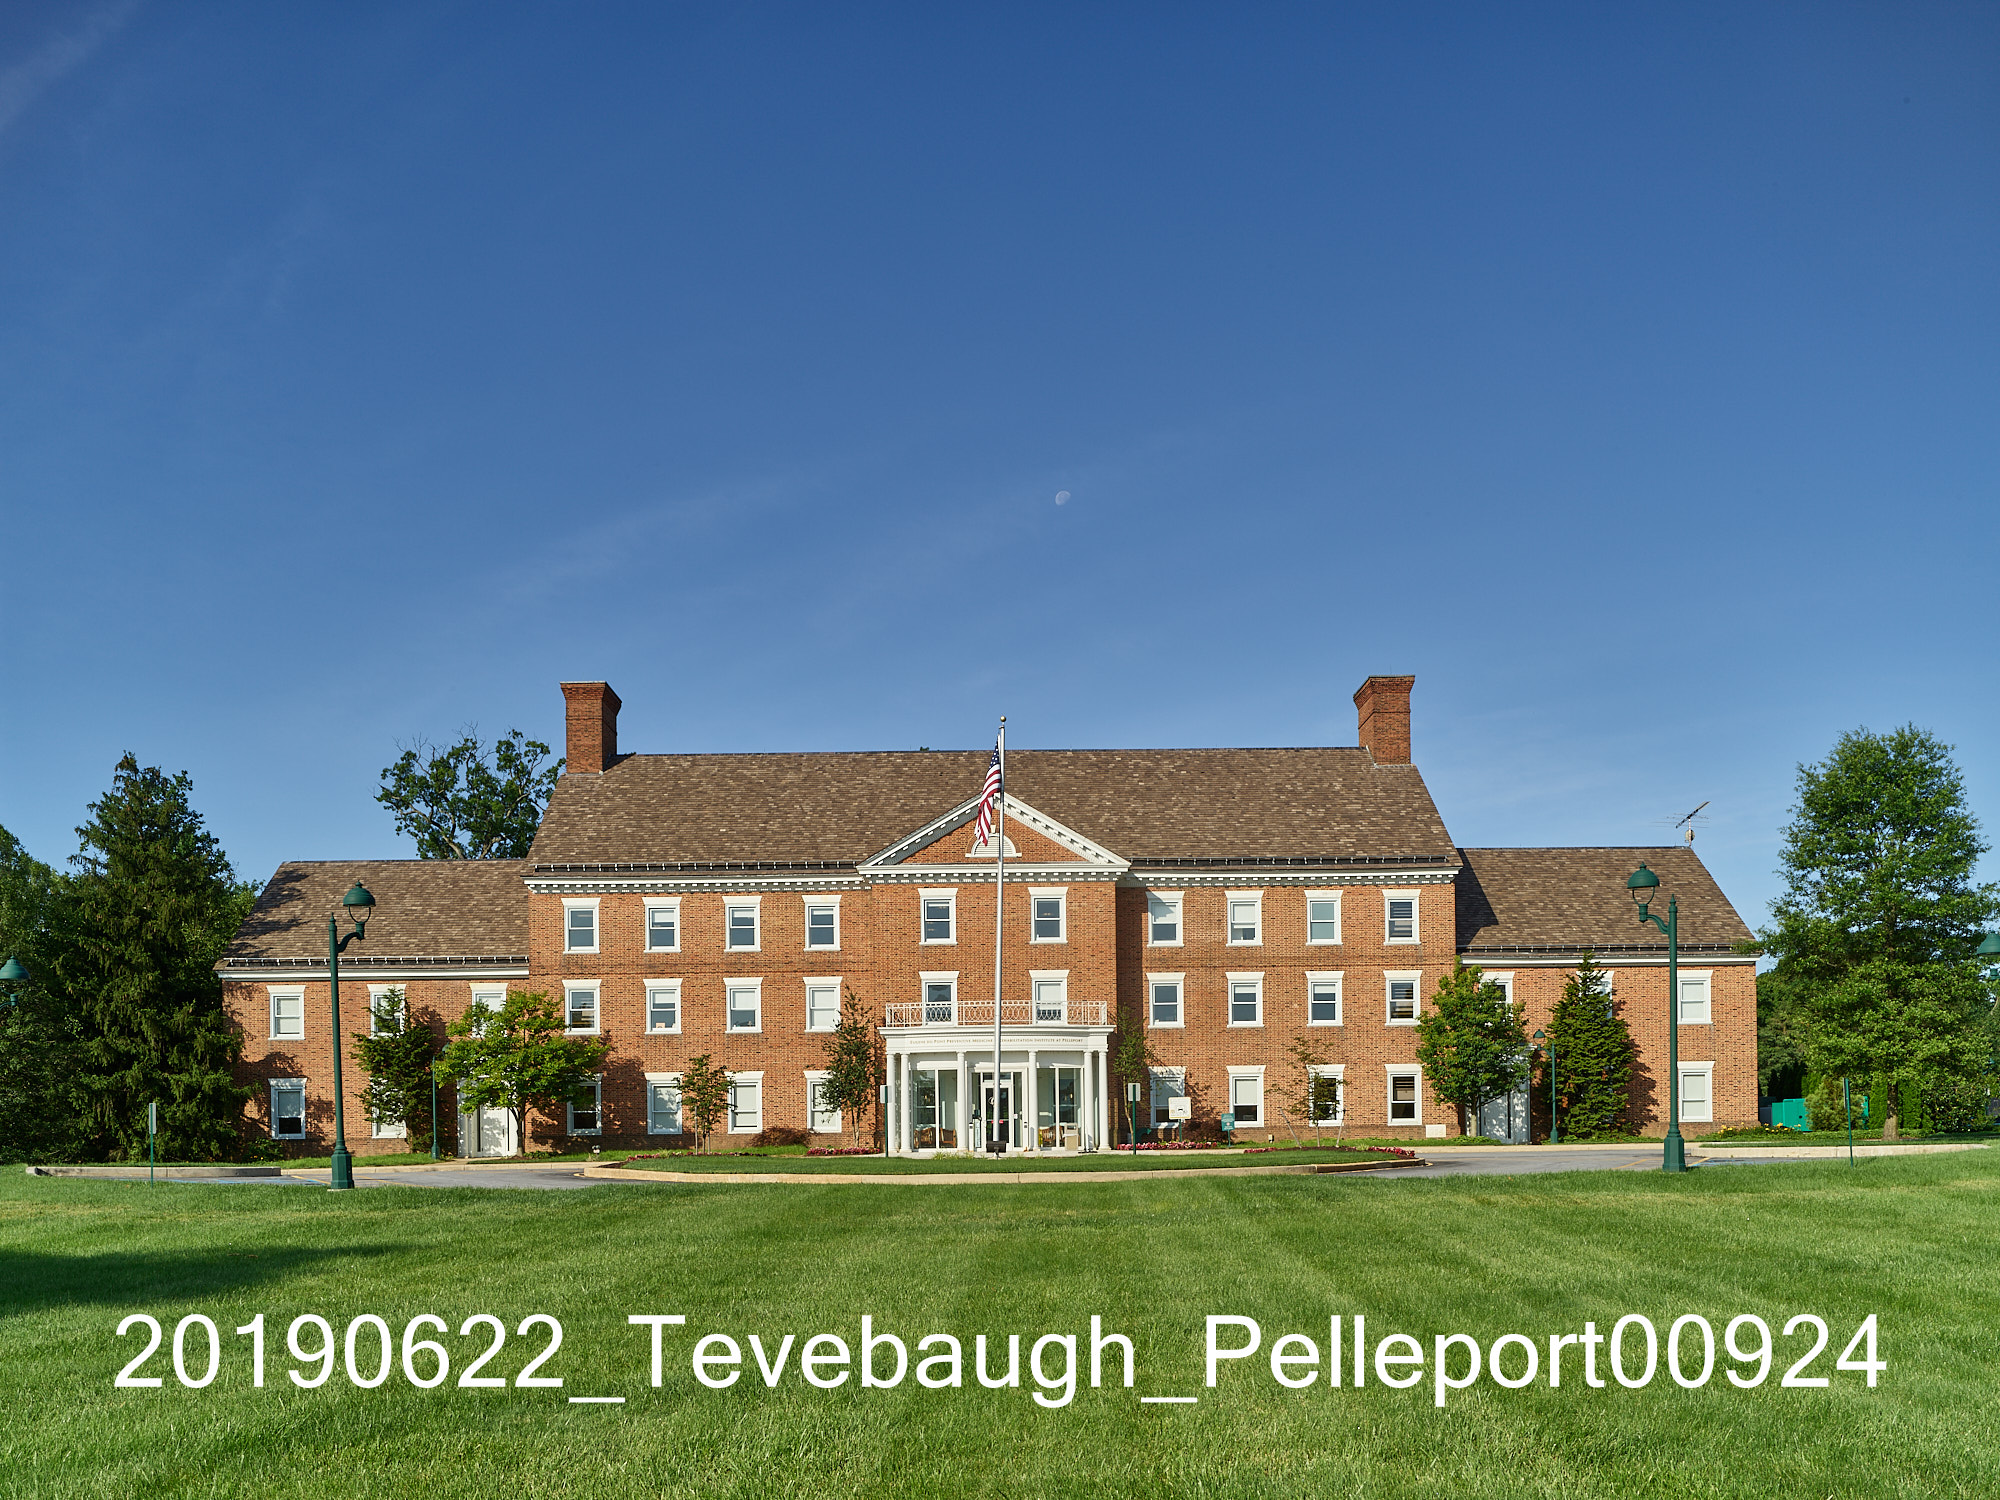 20190622_Tevebaugh_Pelleport00924.jpg